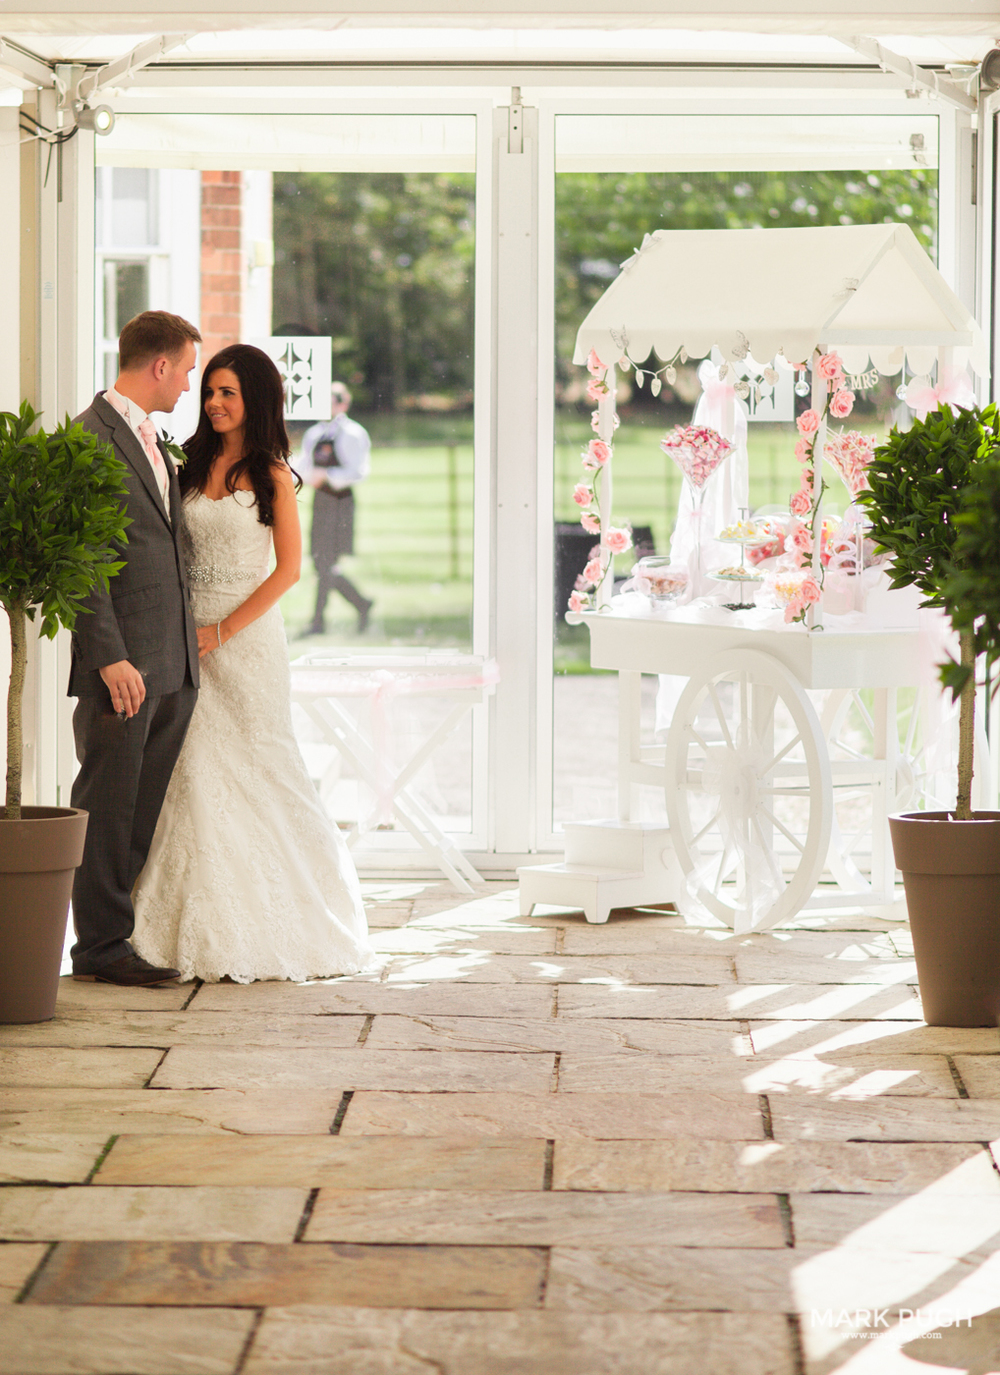 169 - Jacqueline and David - Fine Art Wedding Photography featuring Kelham House Country Manor Hotel NG23 5QP by Mark Pugh www.markpugh.com.jpg